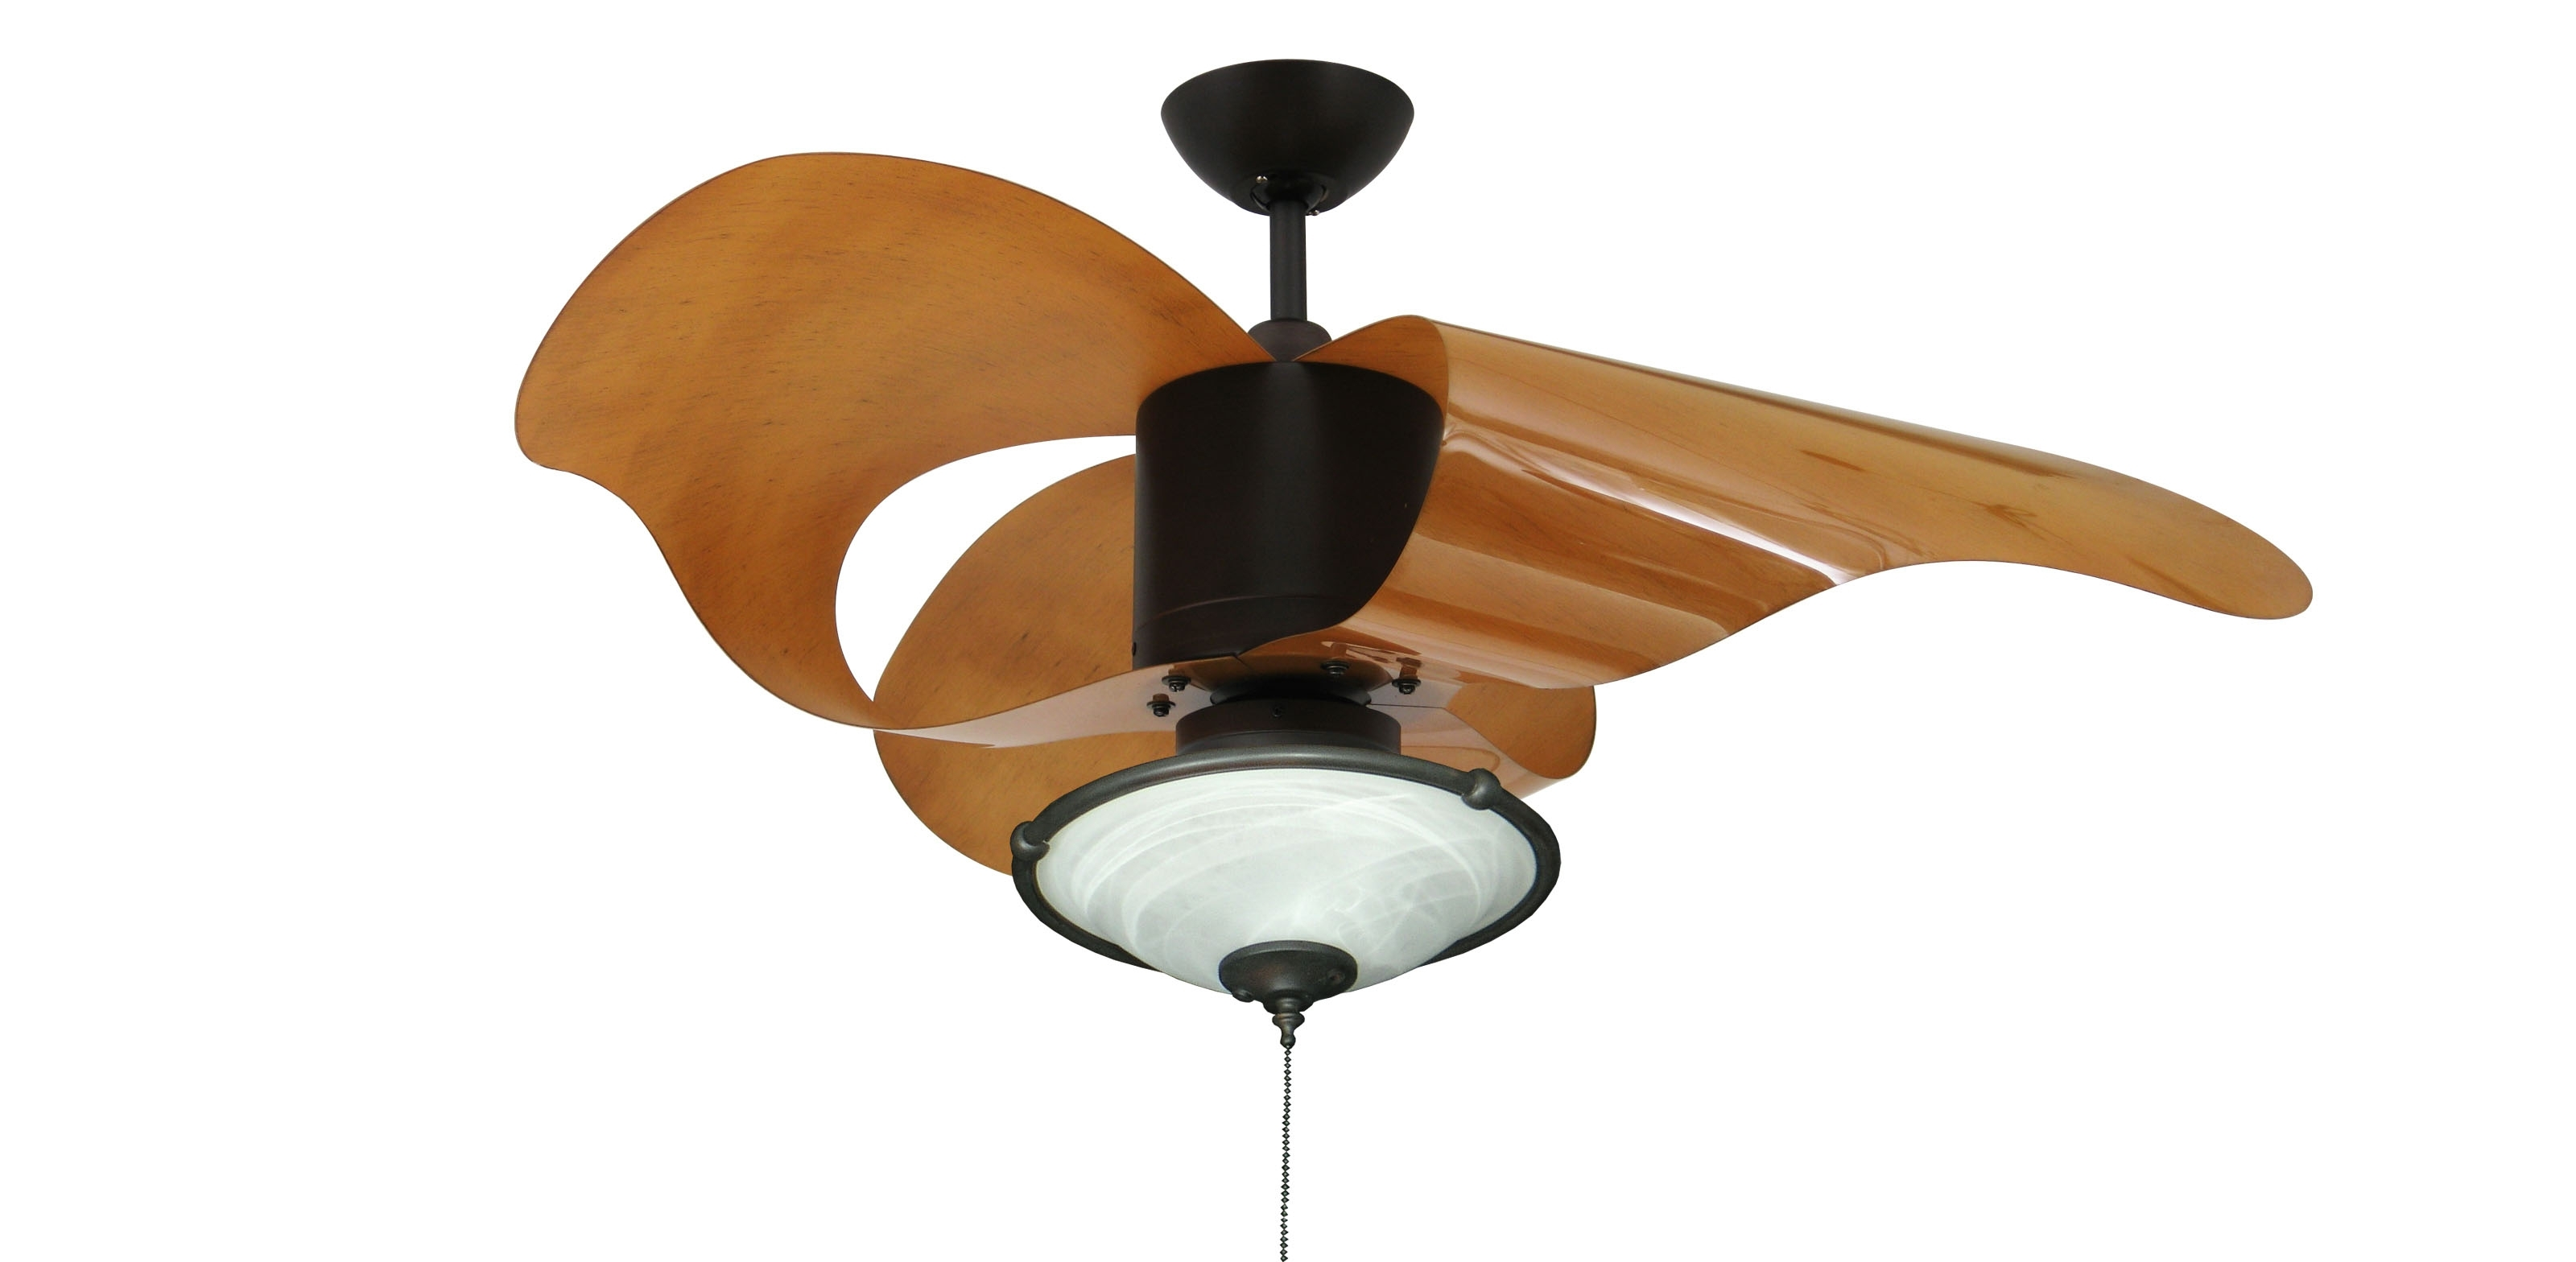 Modest Unique Big Unusual Ceiling Fans With Lights For Current Unique Outdoor Ceiling Fans With Lights (Gallery 3 of 20)